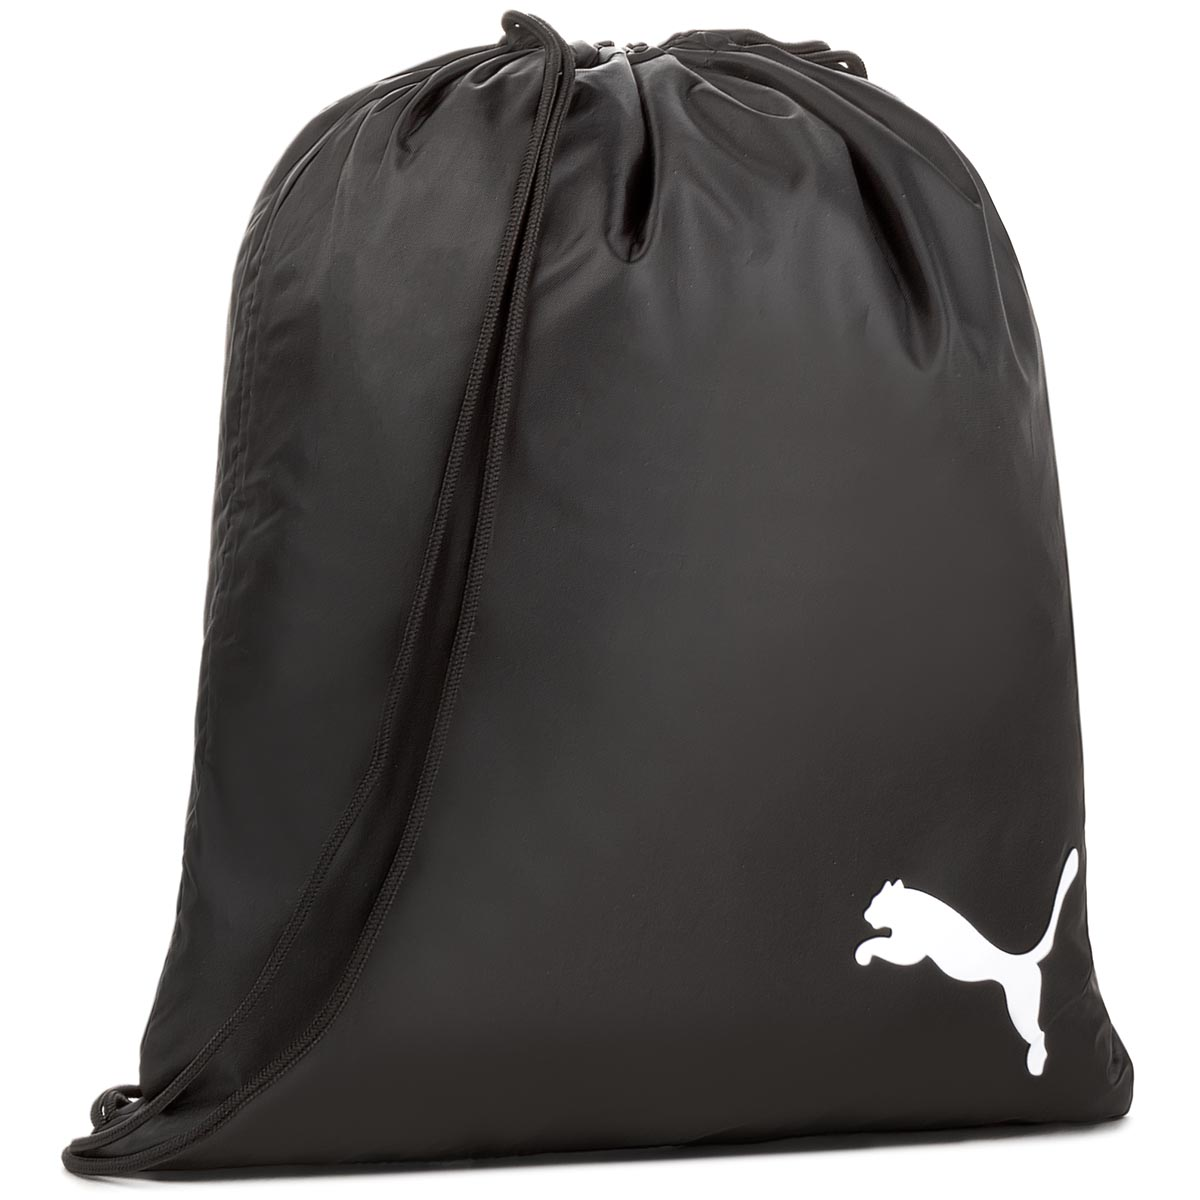 Plecak PUMA – Pro Training II Gym Sack 074899 01 Black